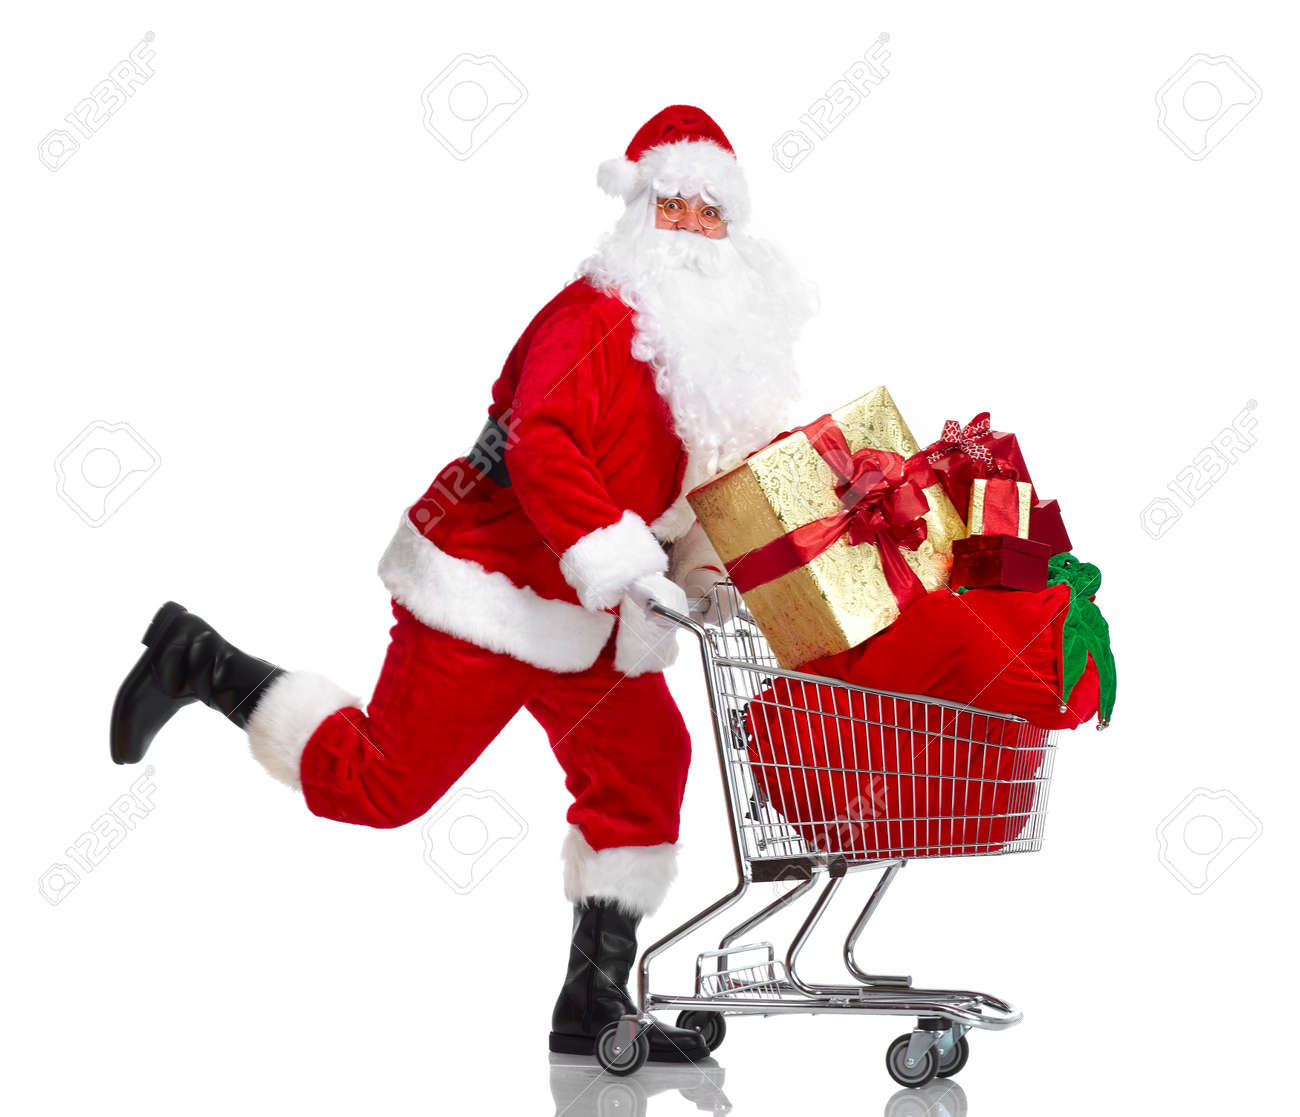 Santa Claus with gifts and shopping trolley. Stock Photo - 11080257